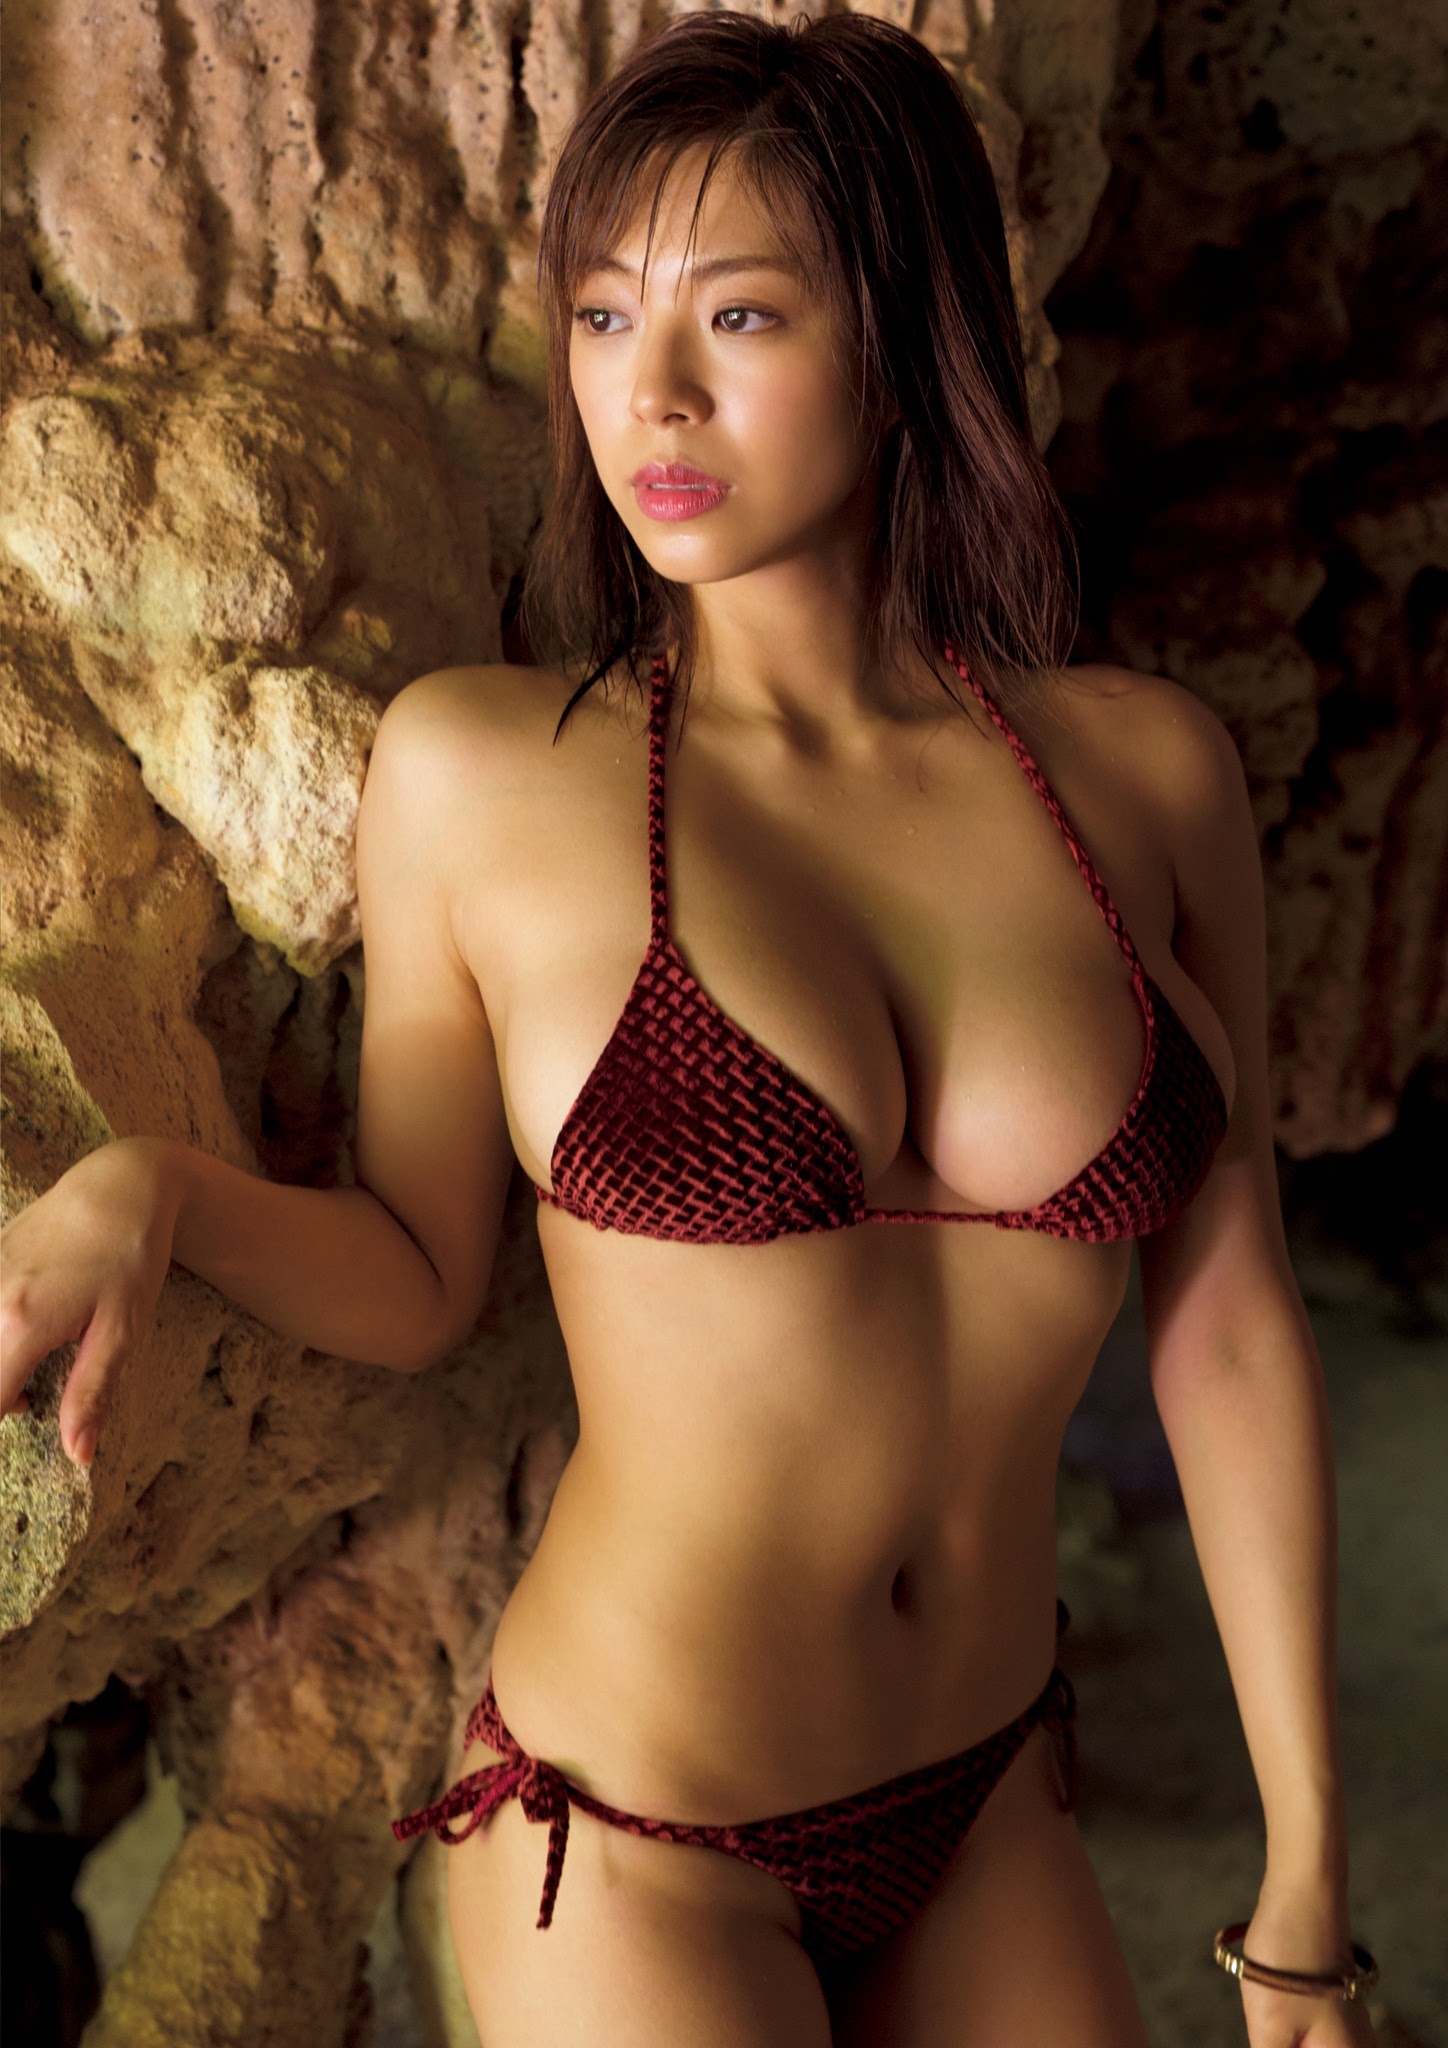 Super body of H cup Minami Wachi 2020 that exposes body and mind in tropical Thailand028